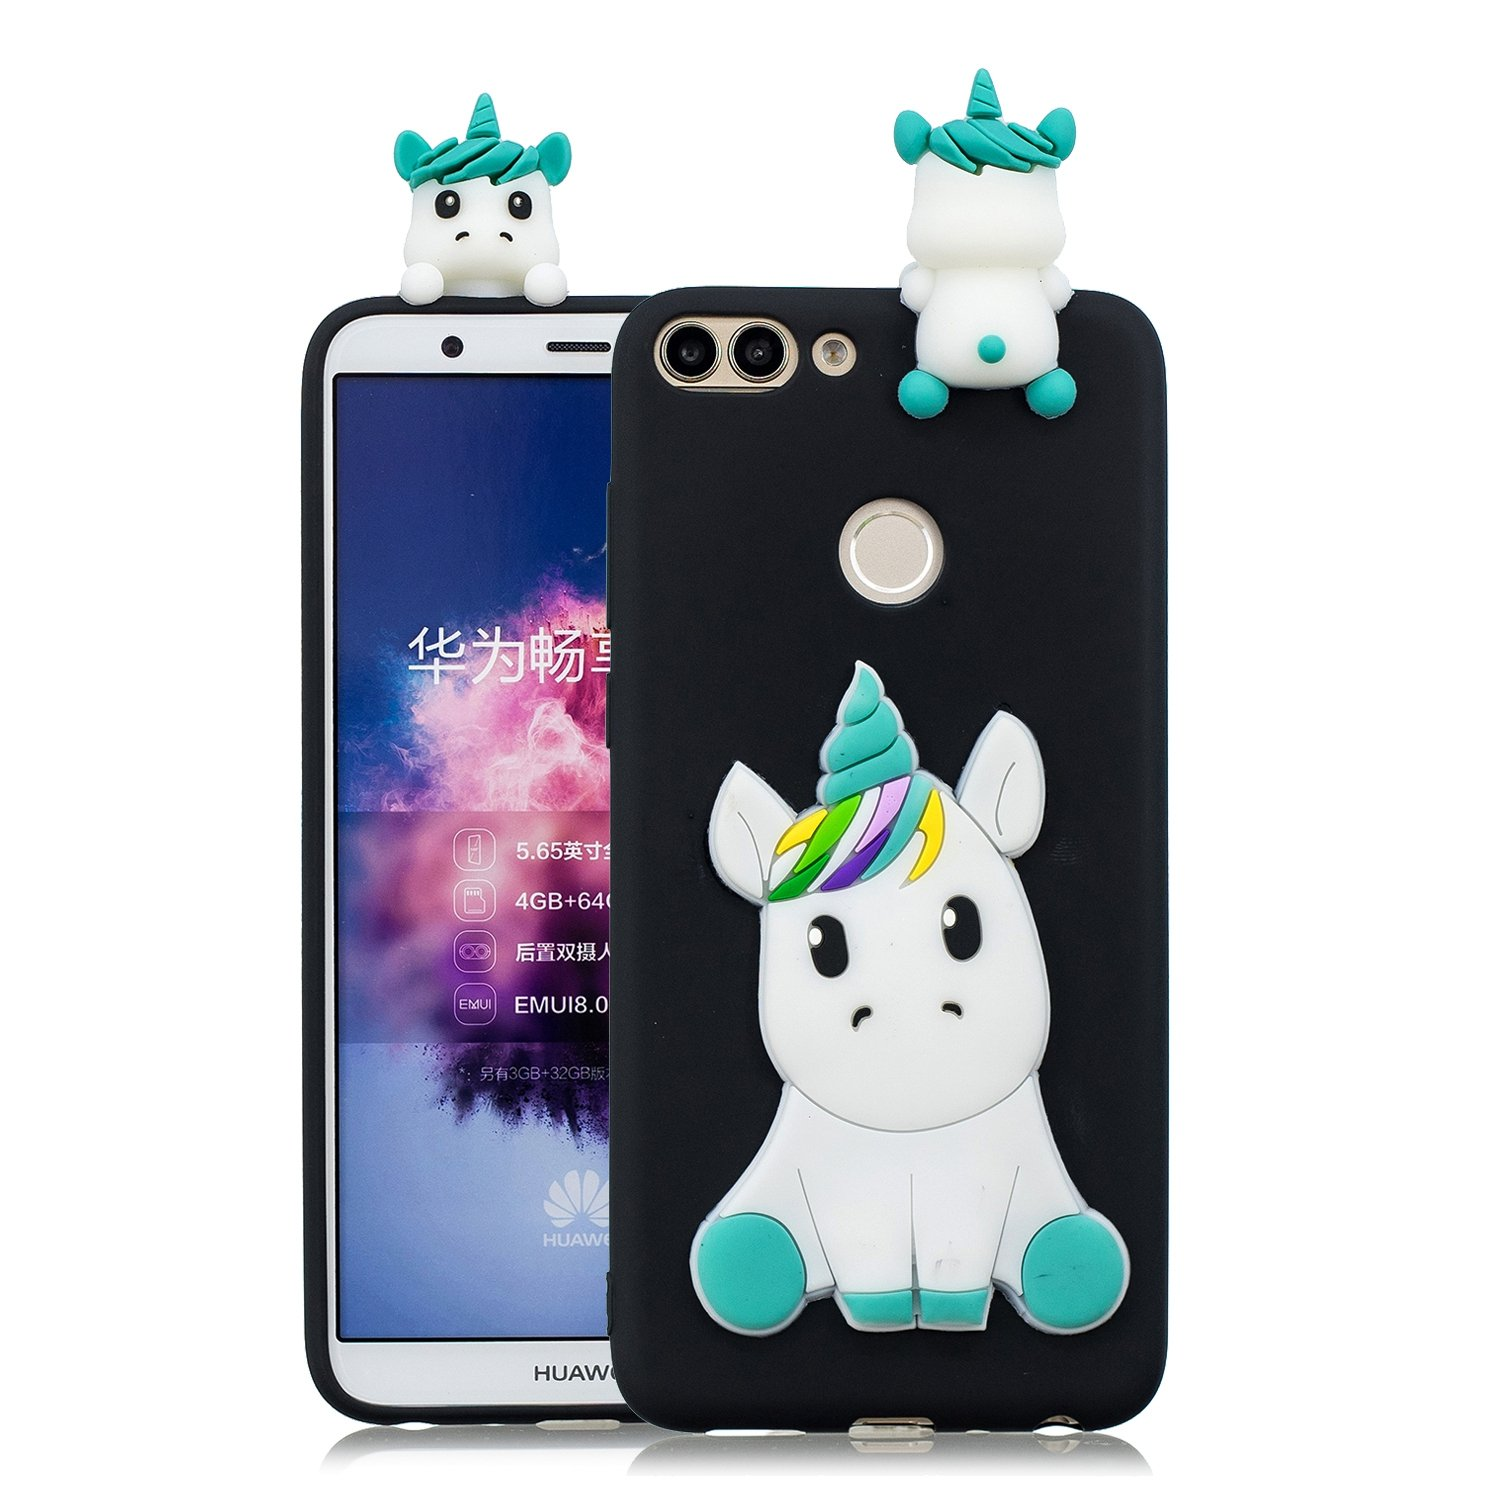 HopMore Coque Huawei P Smart Silicone Souple 3D Design Motif Drôle Mignonne Etui Huawei P Smart Étui Antichoc Ultra Mince Fine Gel Bumper Slim Case Housse Protection pour Fille Femme - Panda Blue